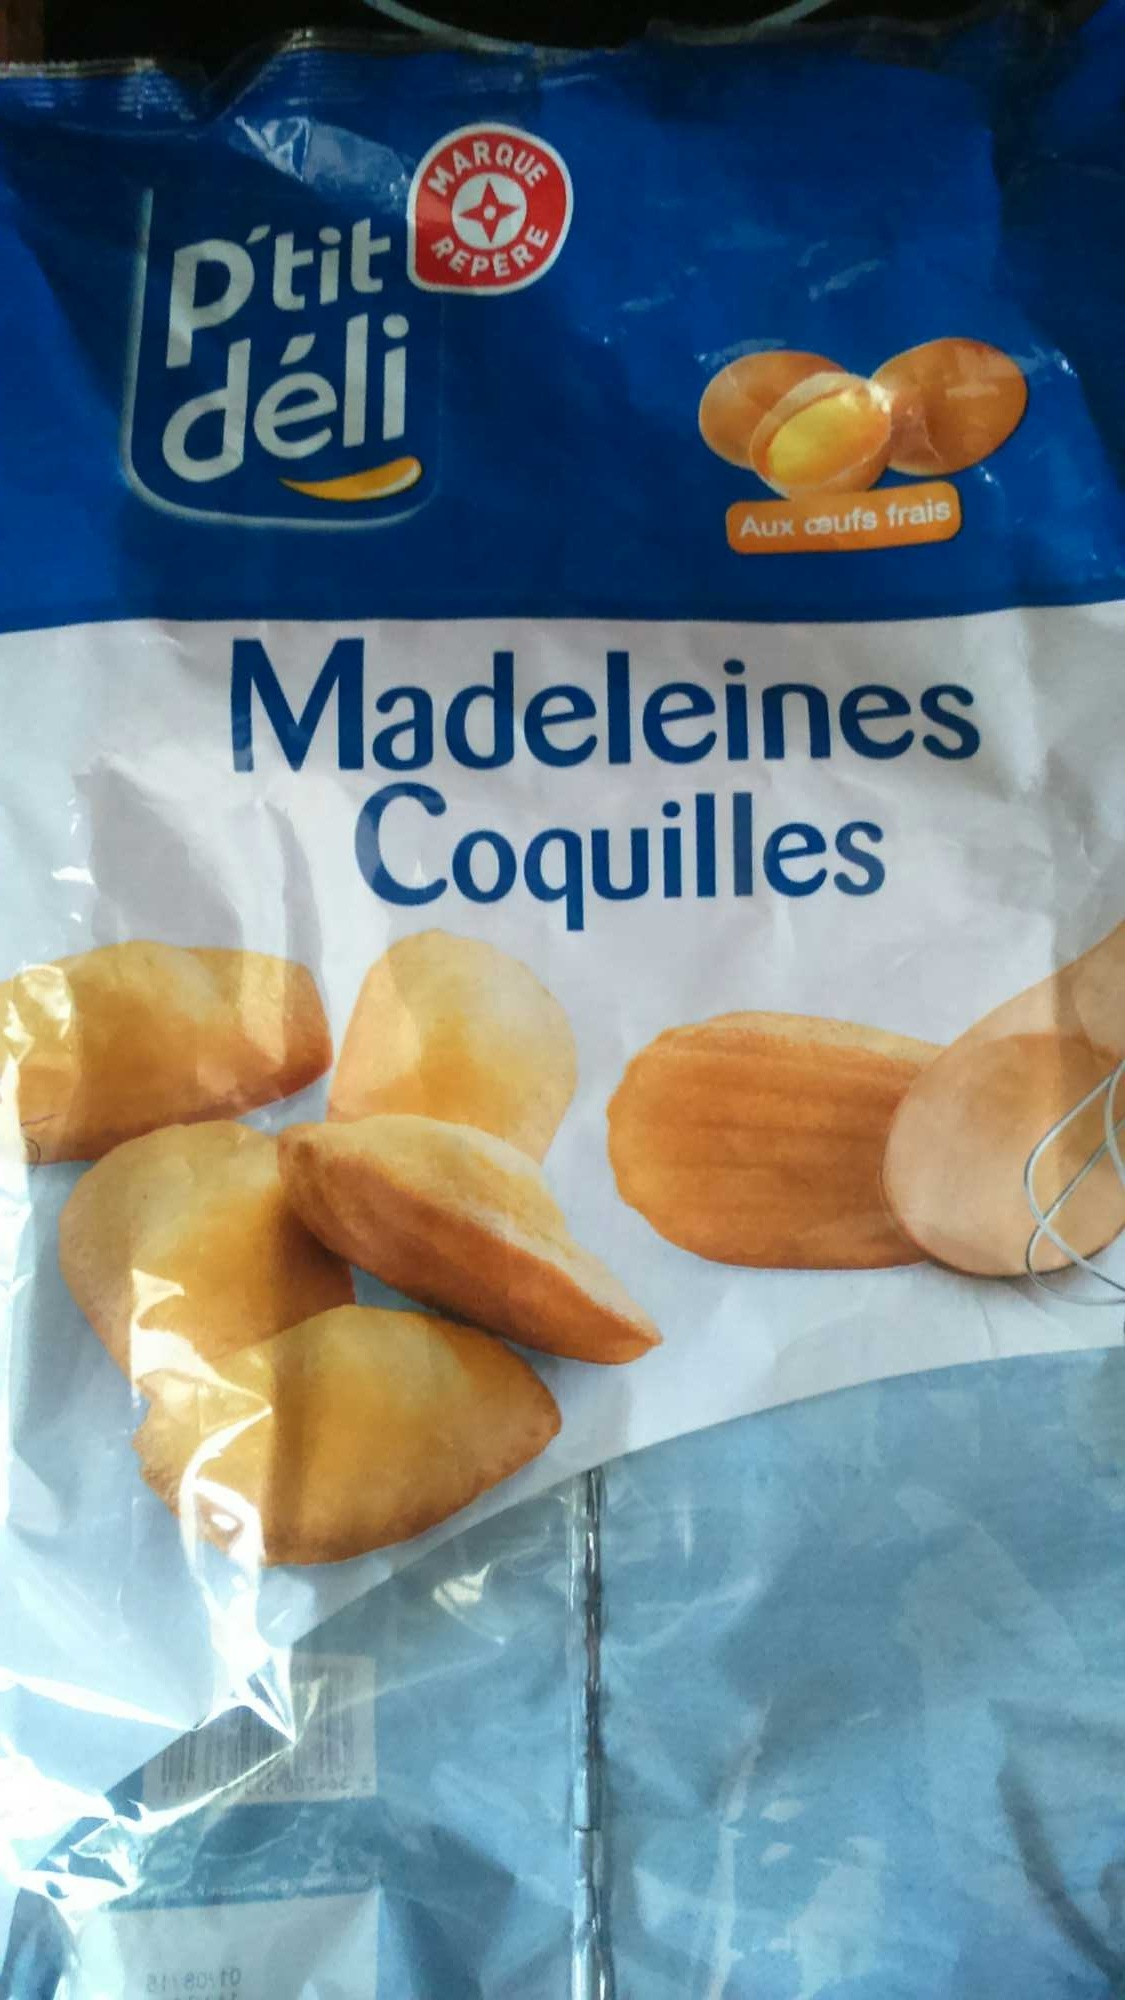 Madeleines coquilles - Product